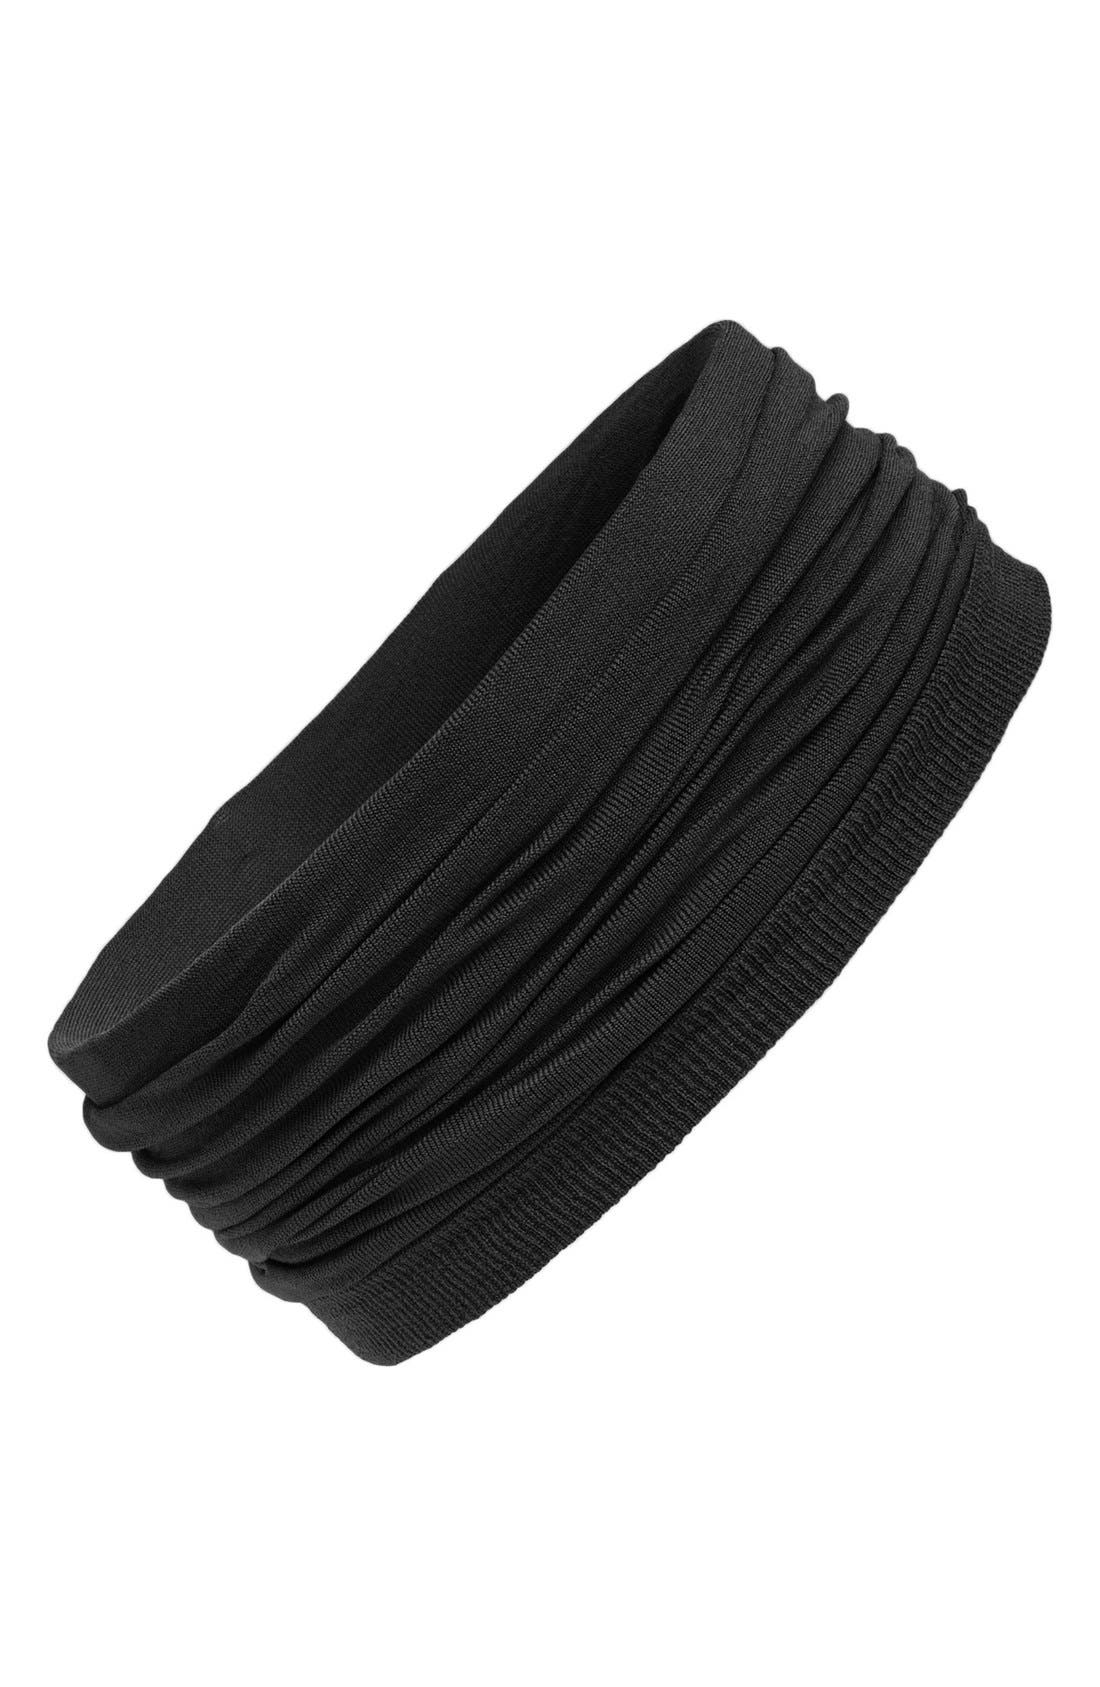 L. Erickson Relaxed Turban Headband